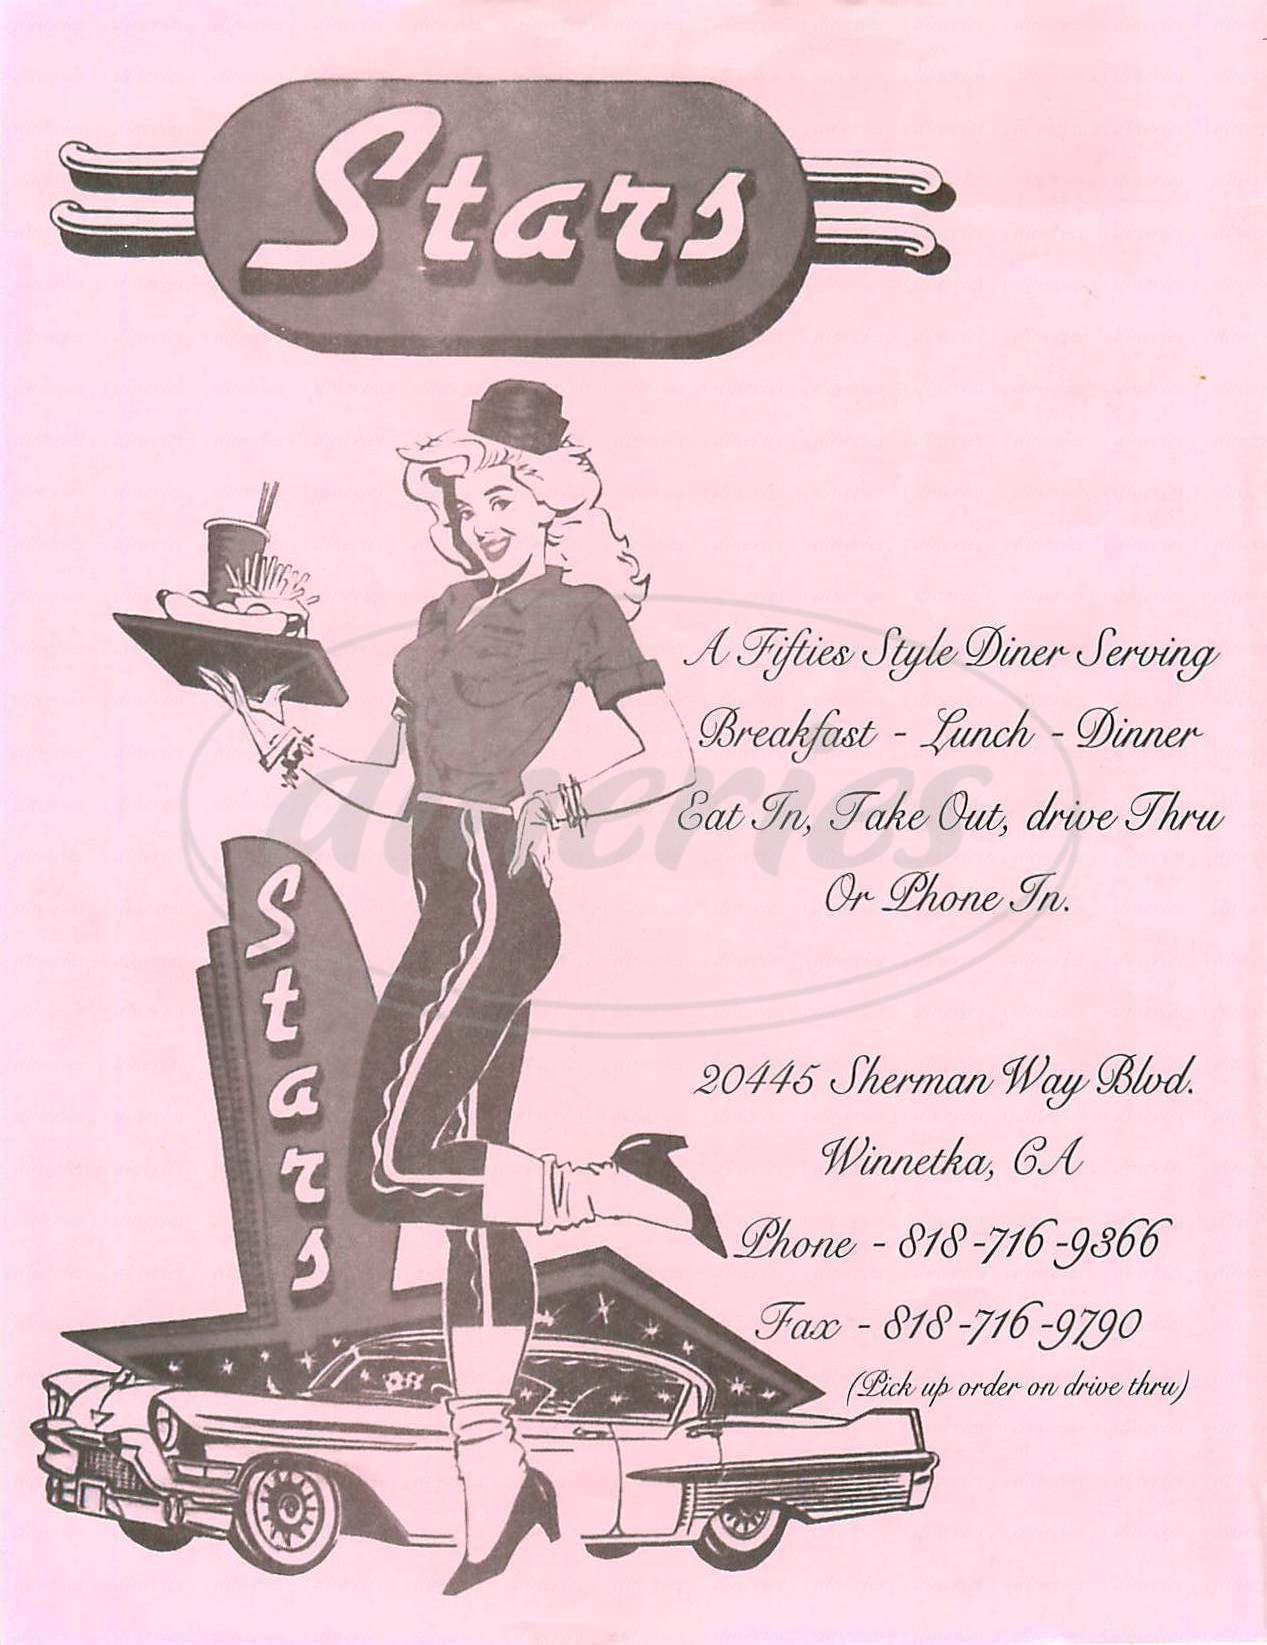 menu for Stars Drive In